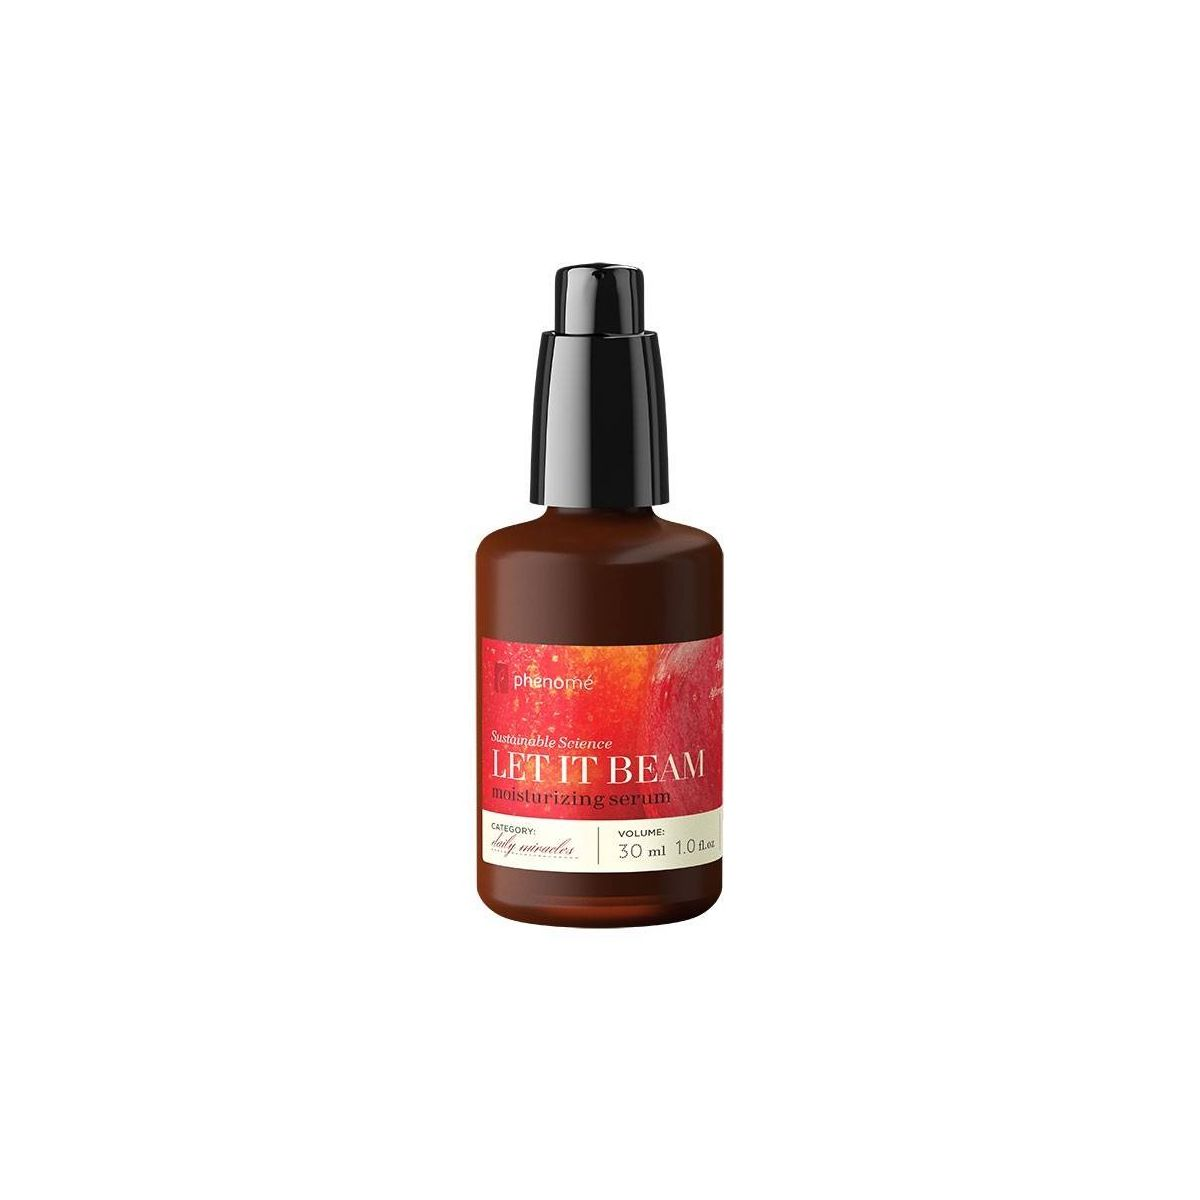 LET IT BEAM moisturizing serum